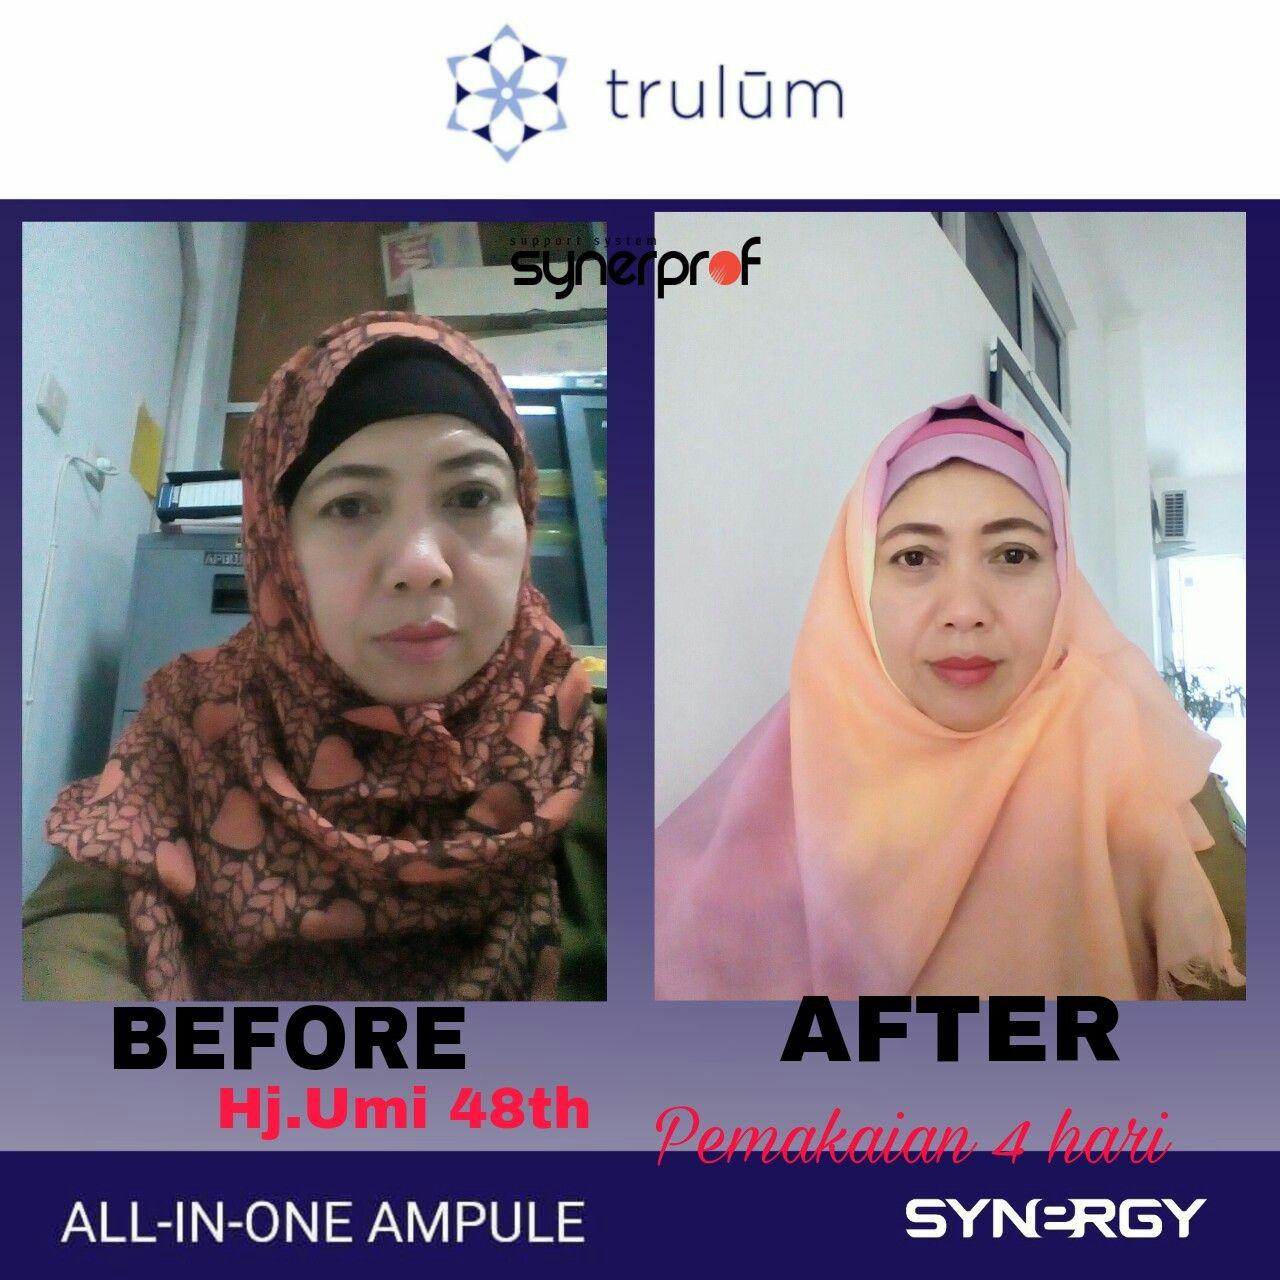 Jual Trulum All In One Ampoule Di Matan Hilir Utara WA: 08112338376